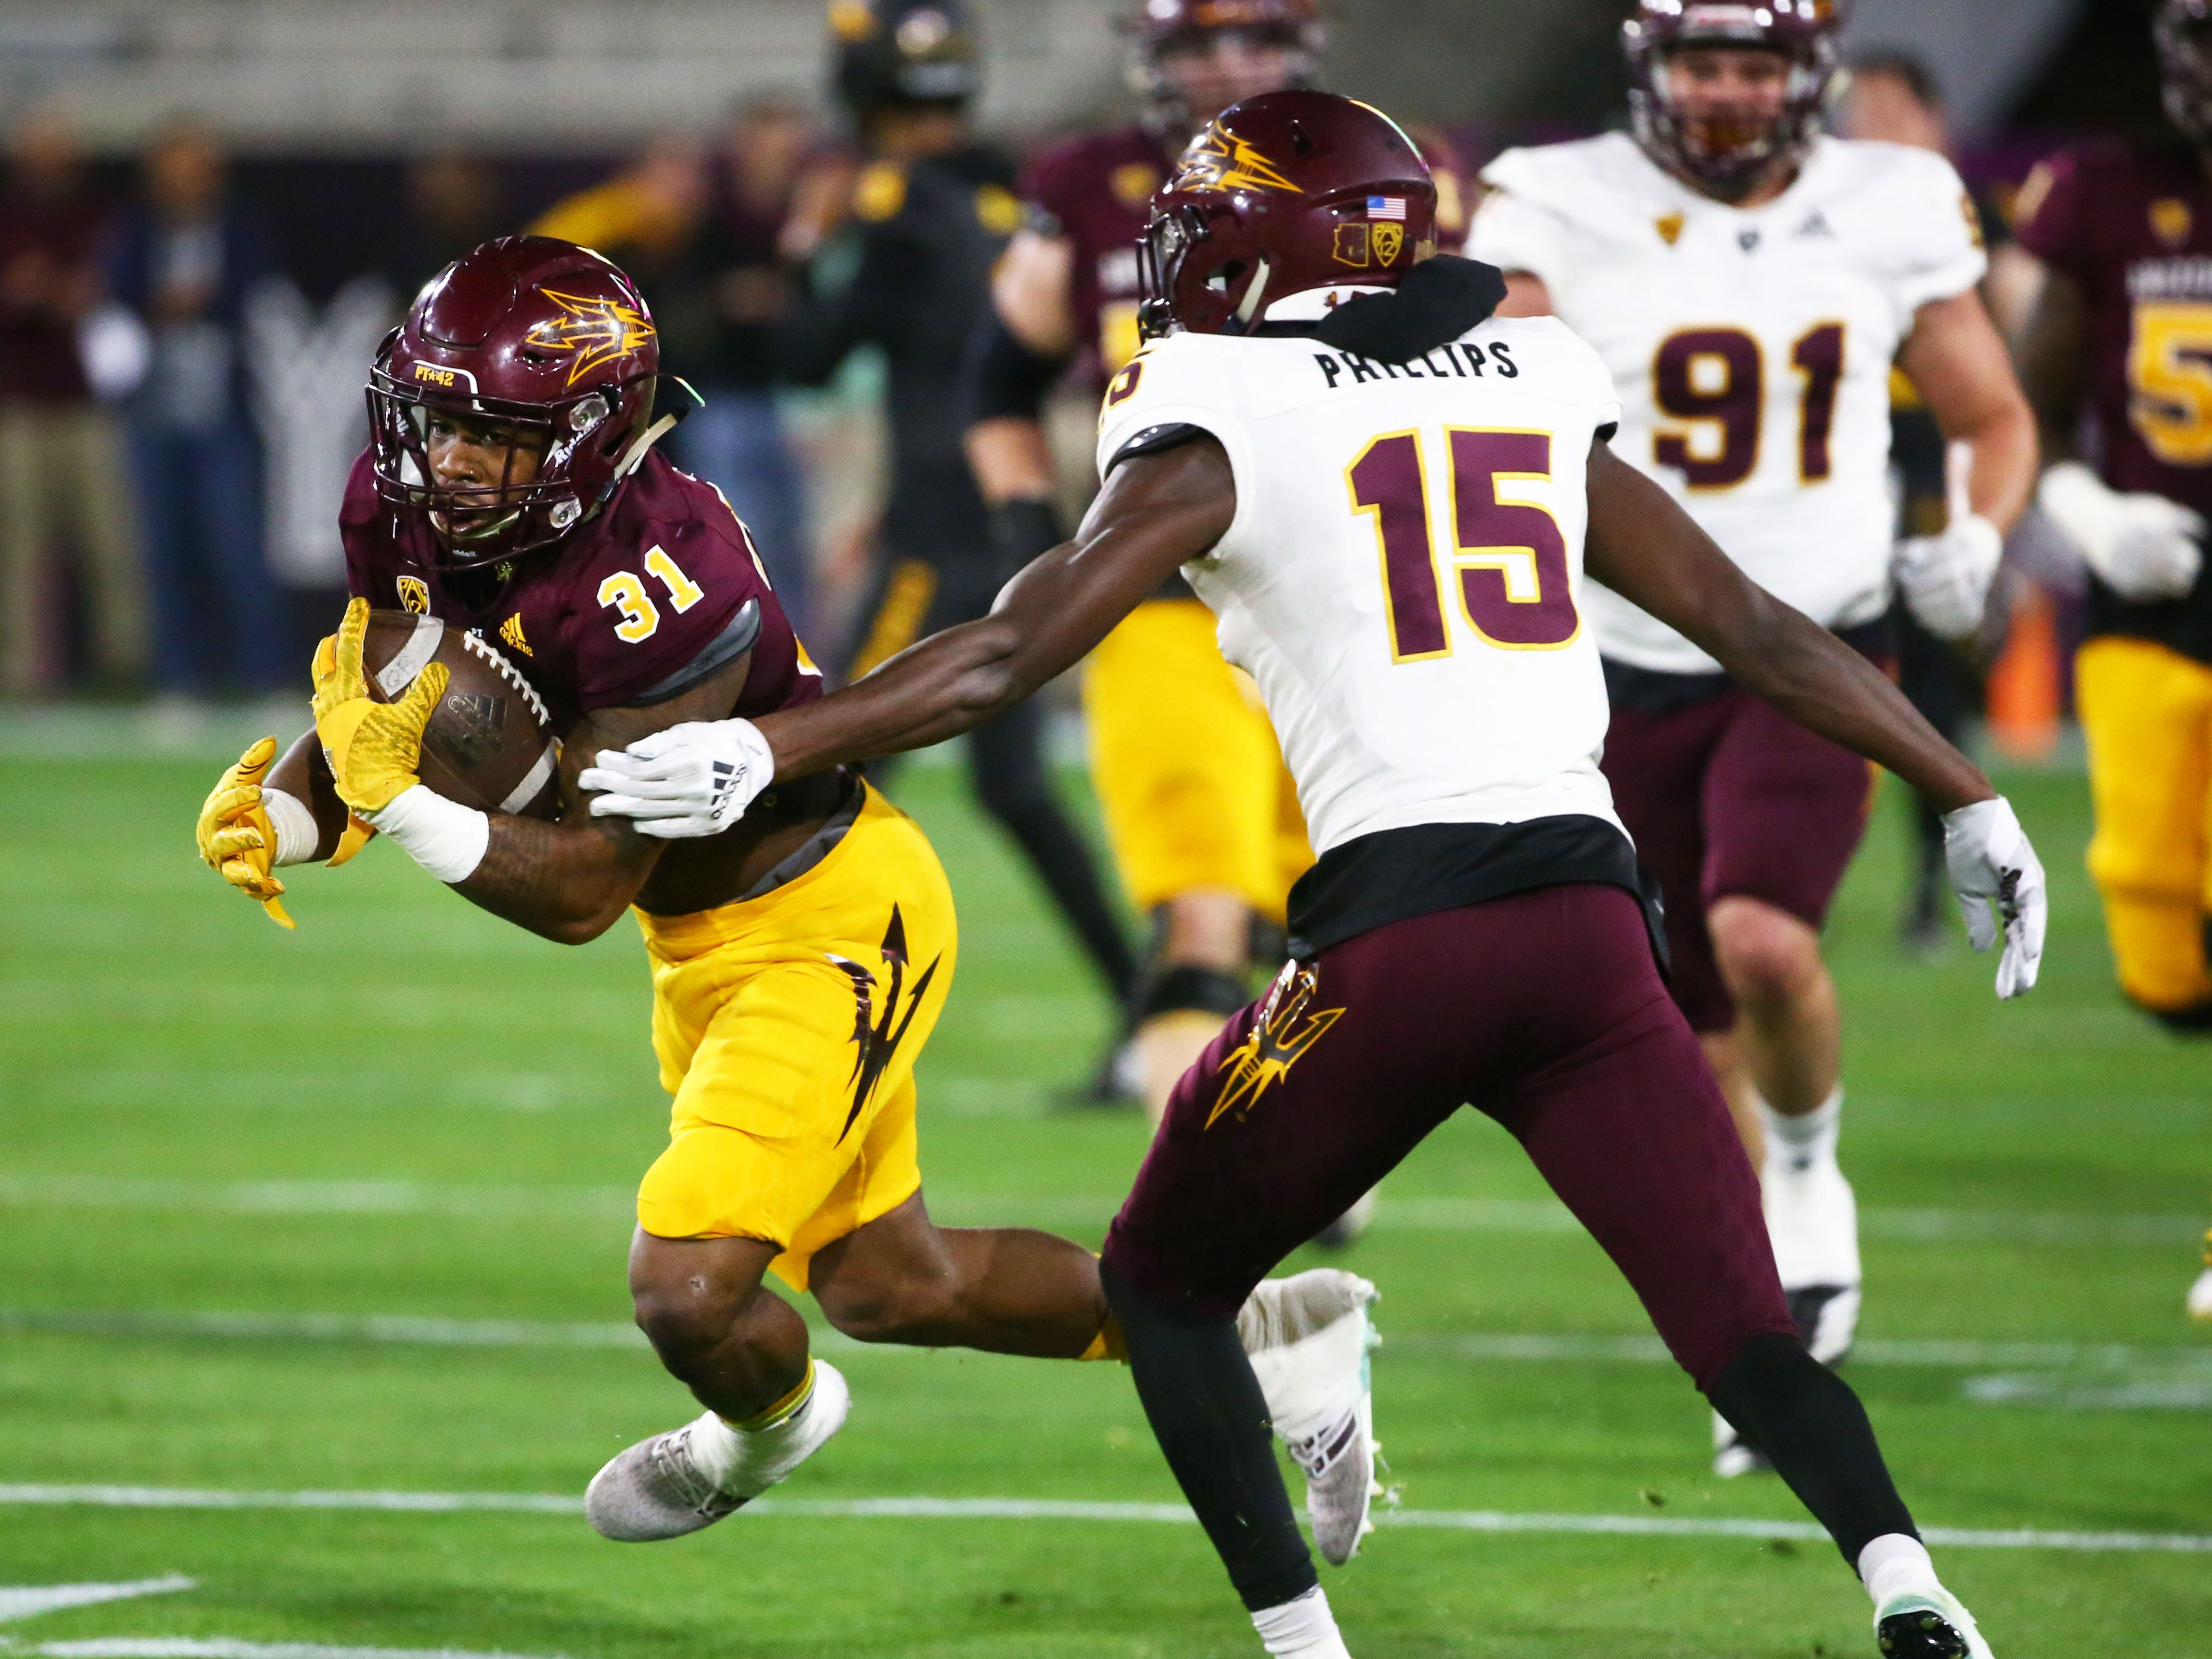 Arizona State running back Isaiah Floyd (31) runs with the ball during the spring practice game on Feb. 28, 2019 at Sun Devil Stadium in Tempe, Ariz.